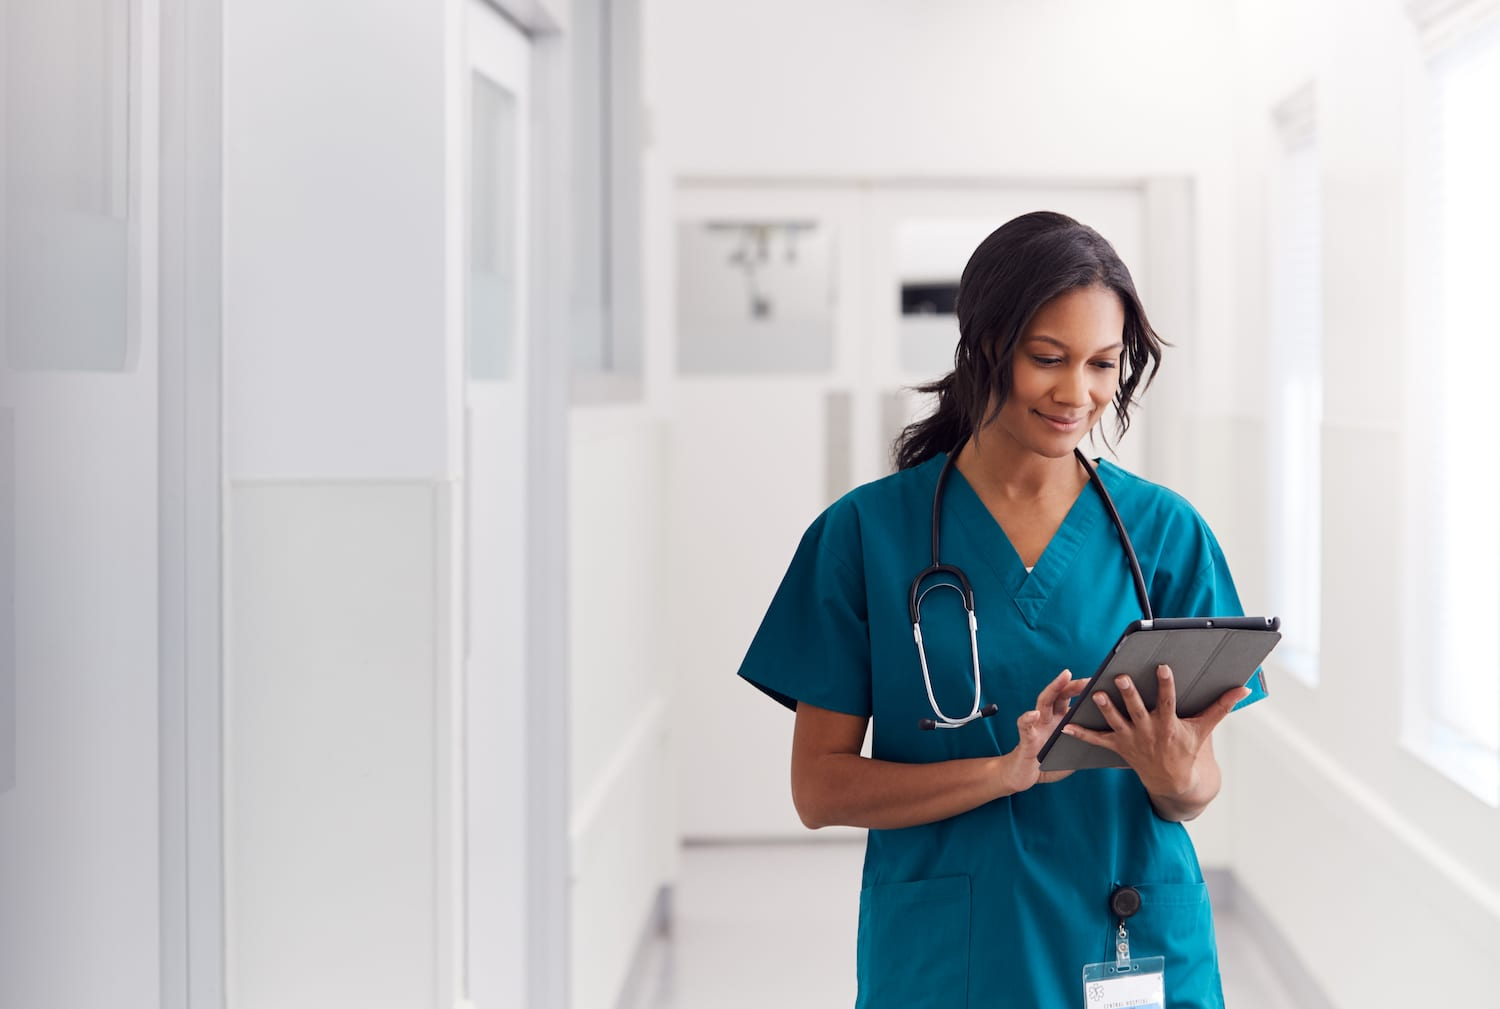 Female doctor looking at tablet